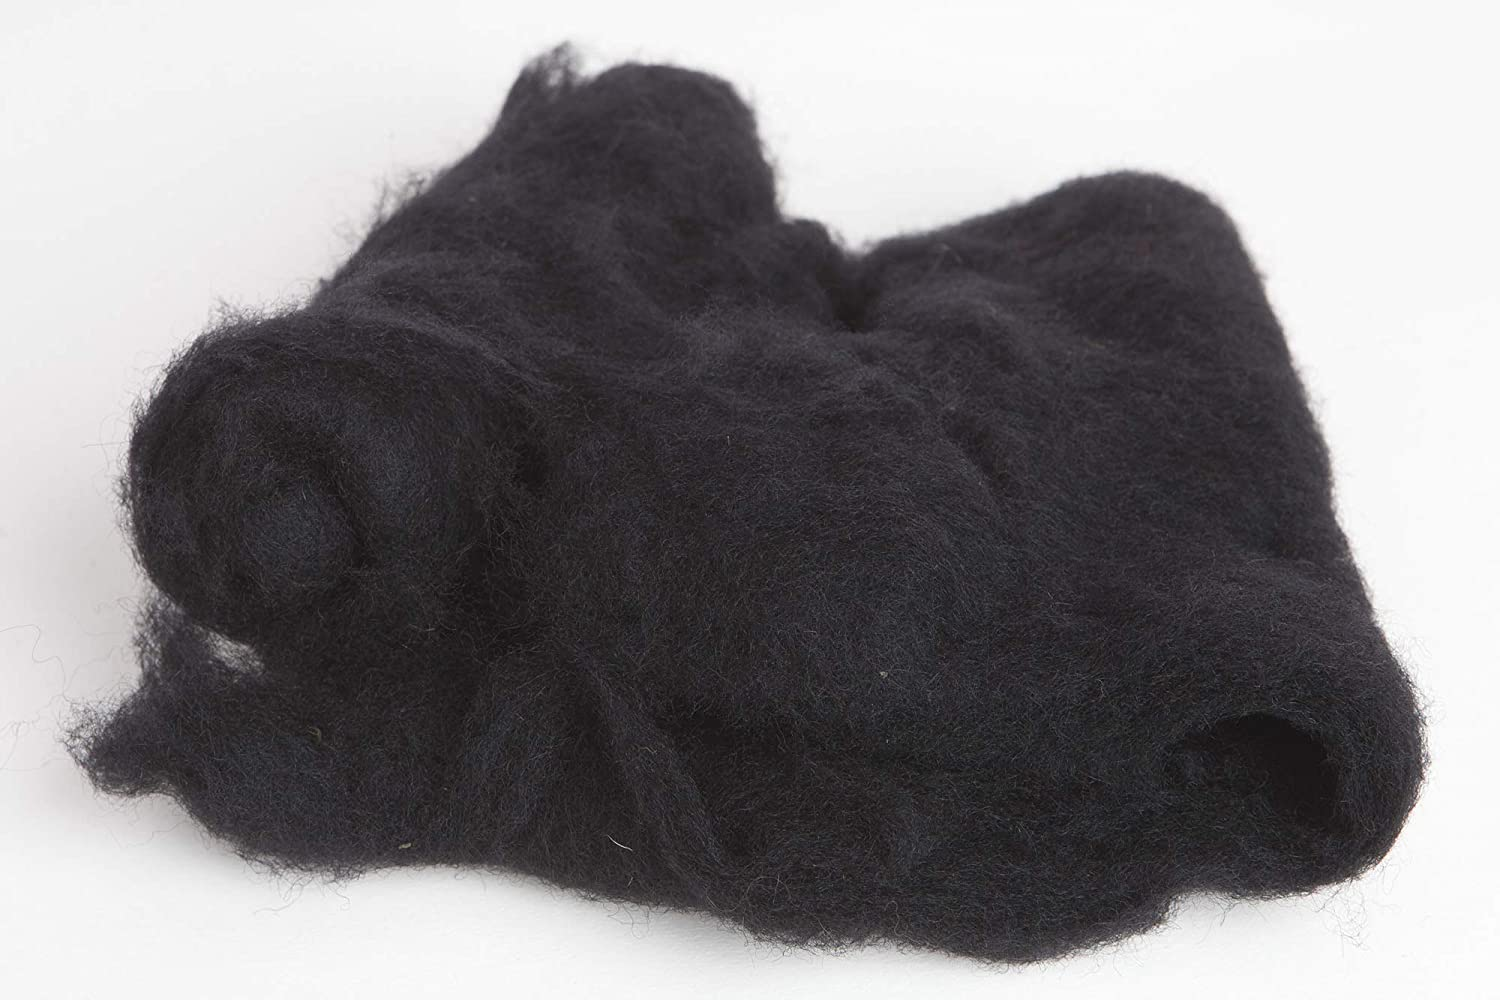 Carded Wool Batts Maori Wool by DHG for Needle Felting 3 Colors Ebony 1 Ounce Each 100/% Pure Wool Collection One Snow Leaf